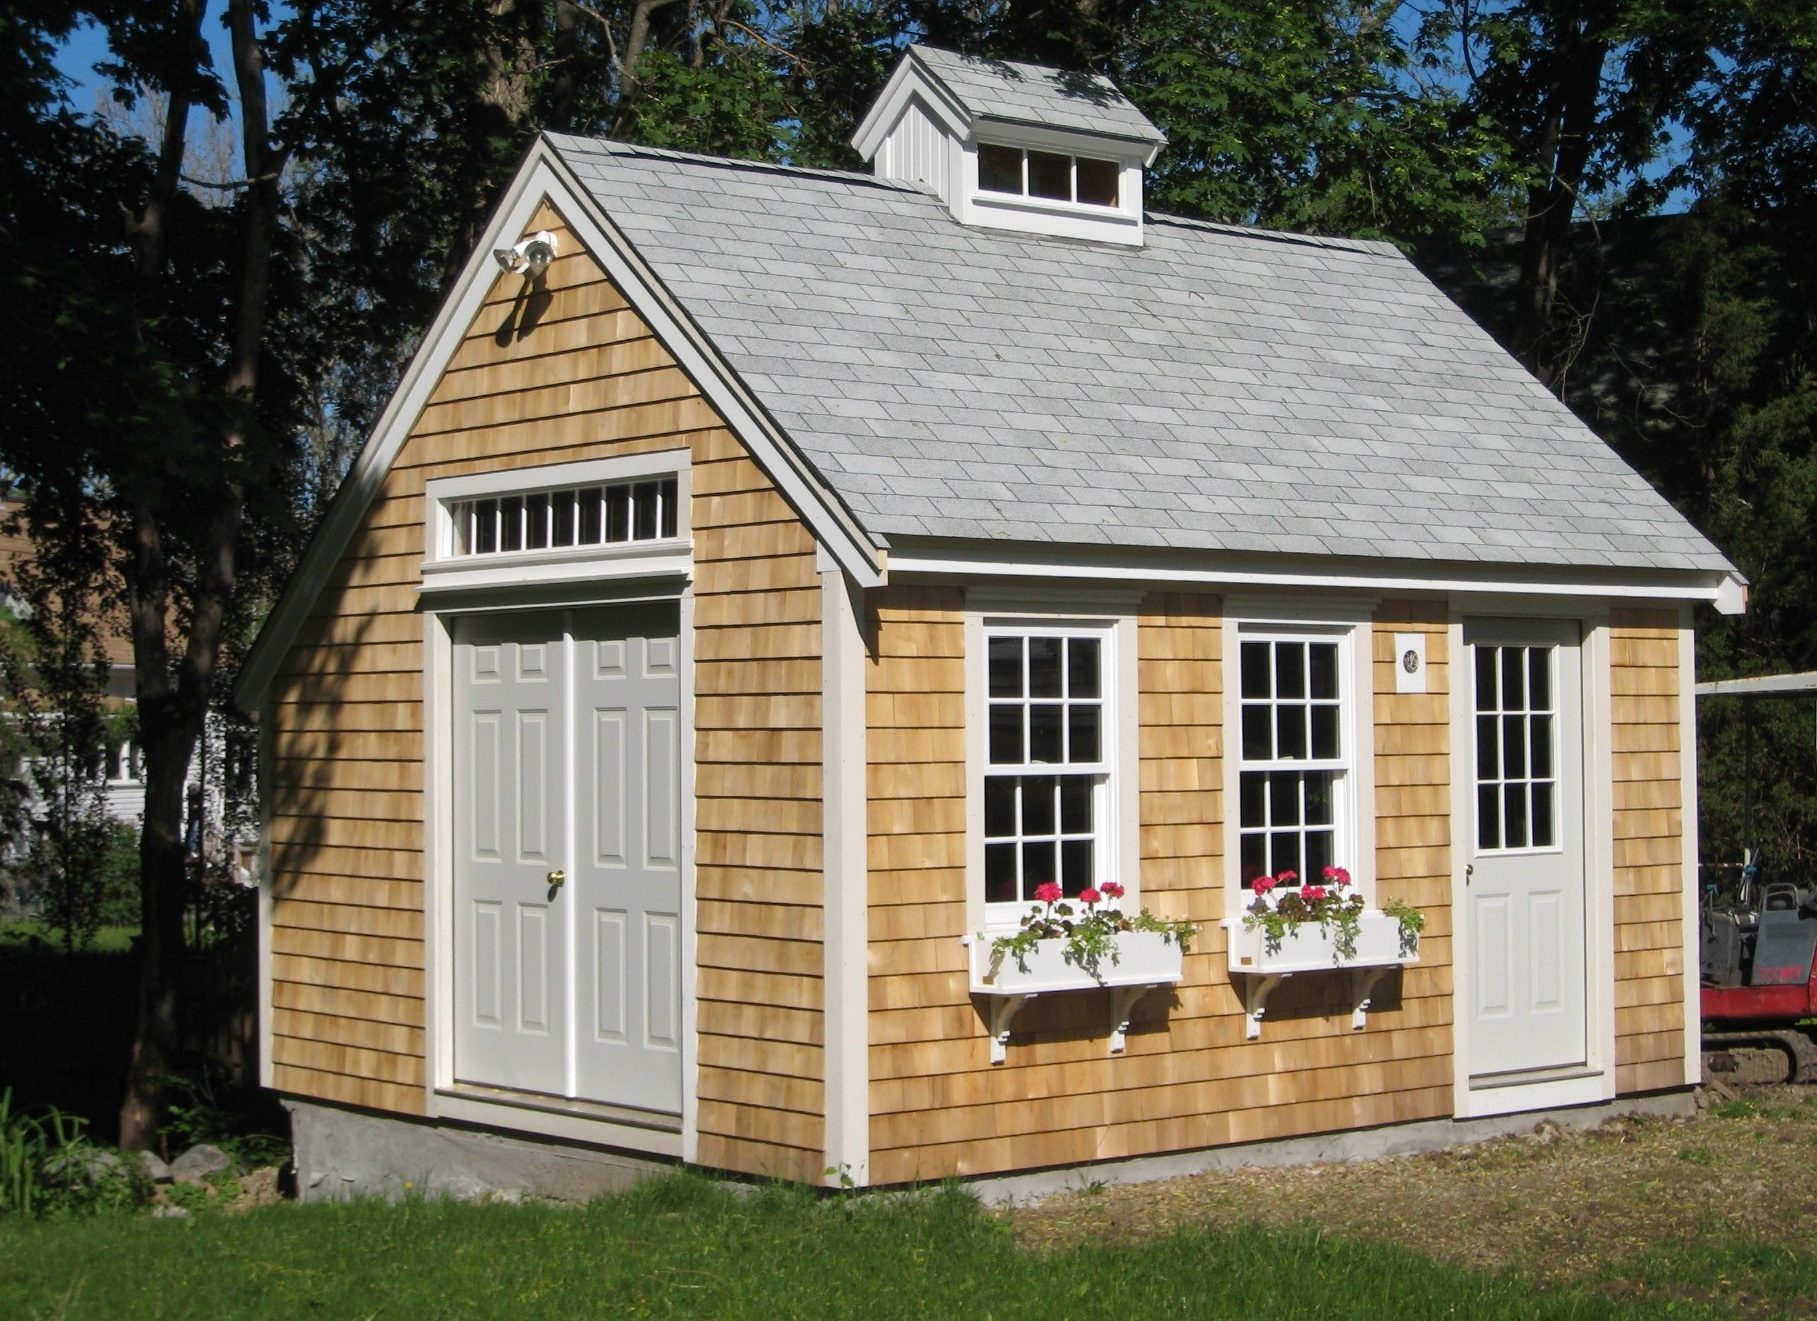 Fairytale backyards 30 magical garden sheds for Shed style house